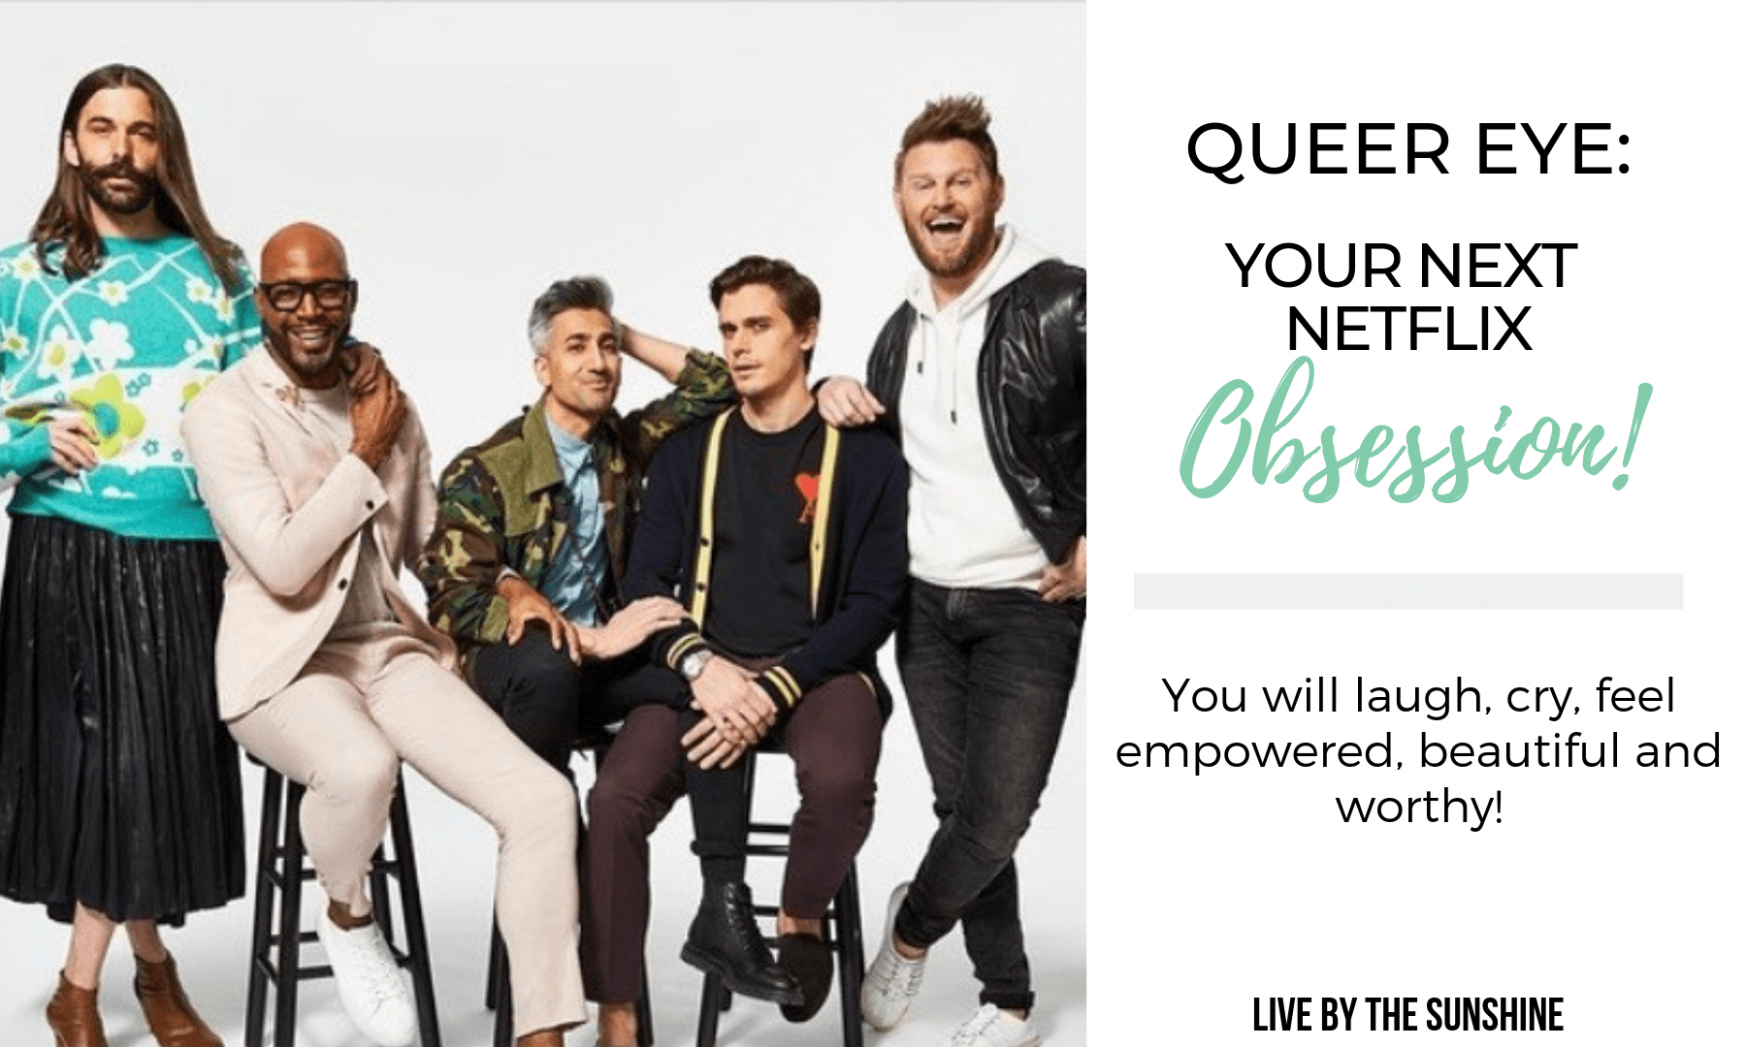 Queer Eye: Your Next Netflix Obsession - Live by the Sunshine